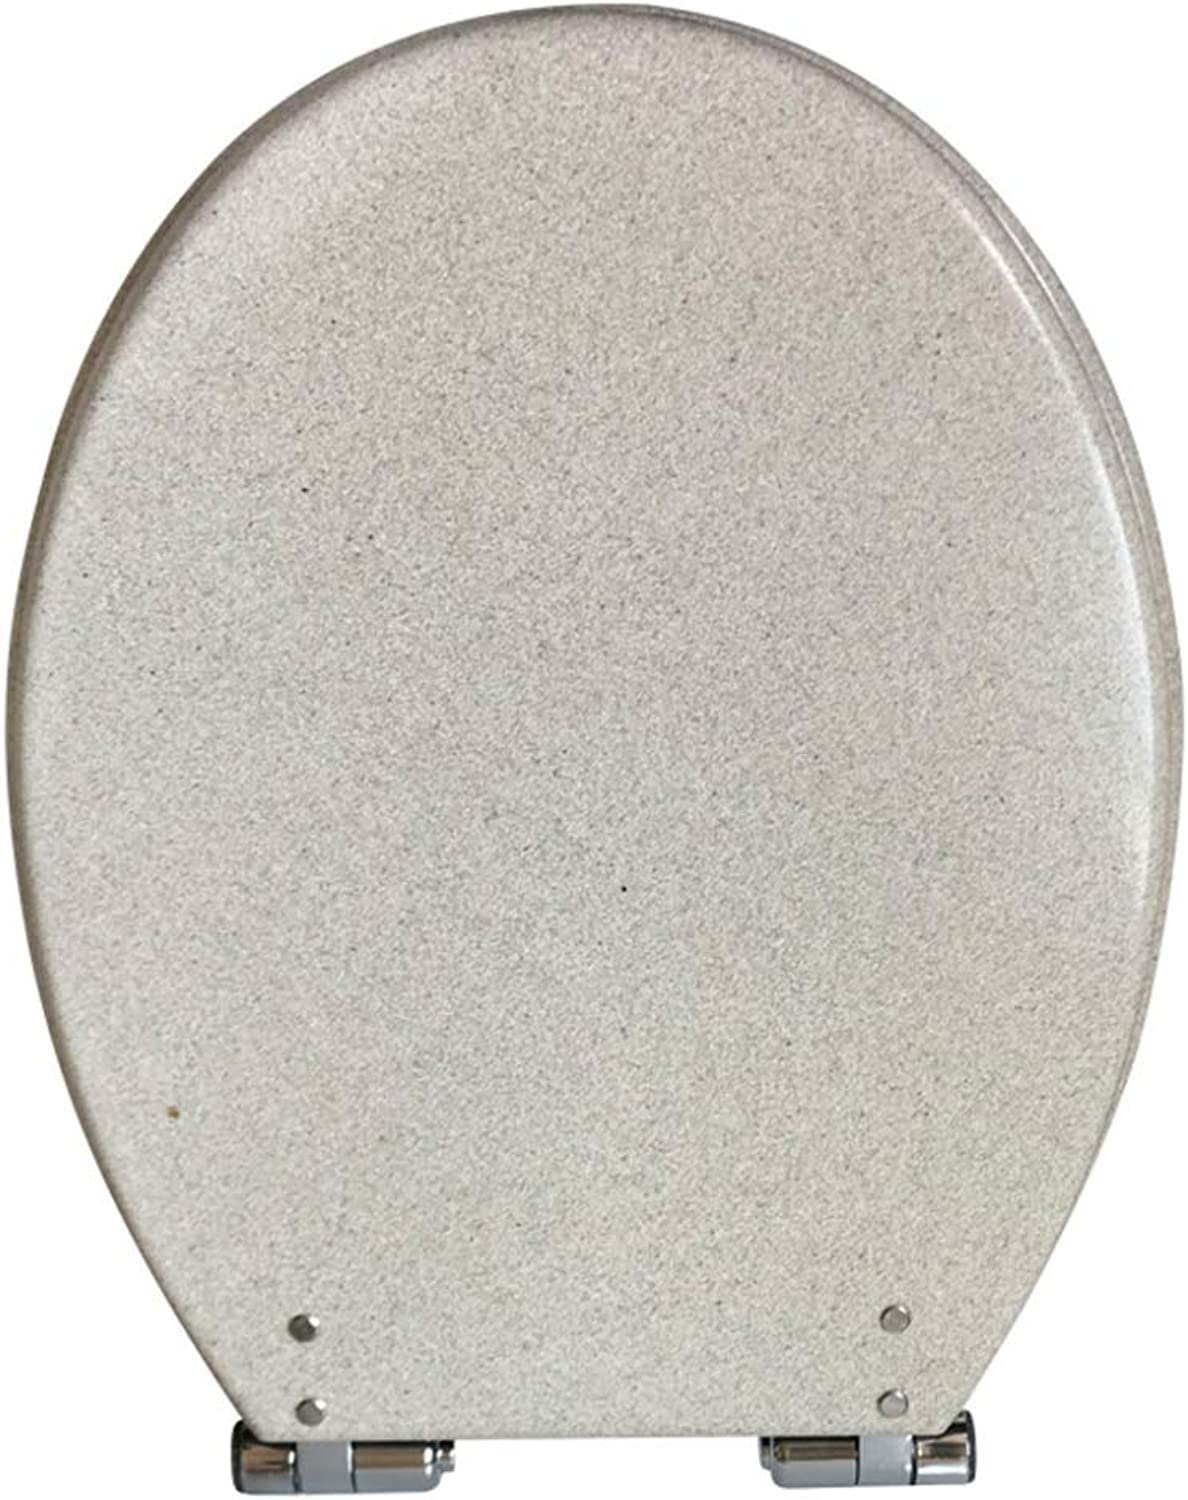 LBRVICTRY Resin Toilet Seat U V O Type Universal,Soft Close, Stainless Steel Hinges Easy To Install,White-Upperfixed